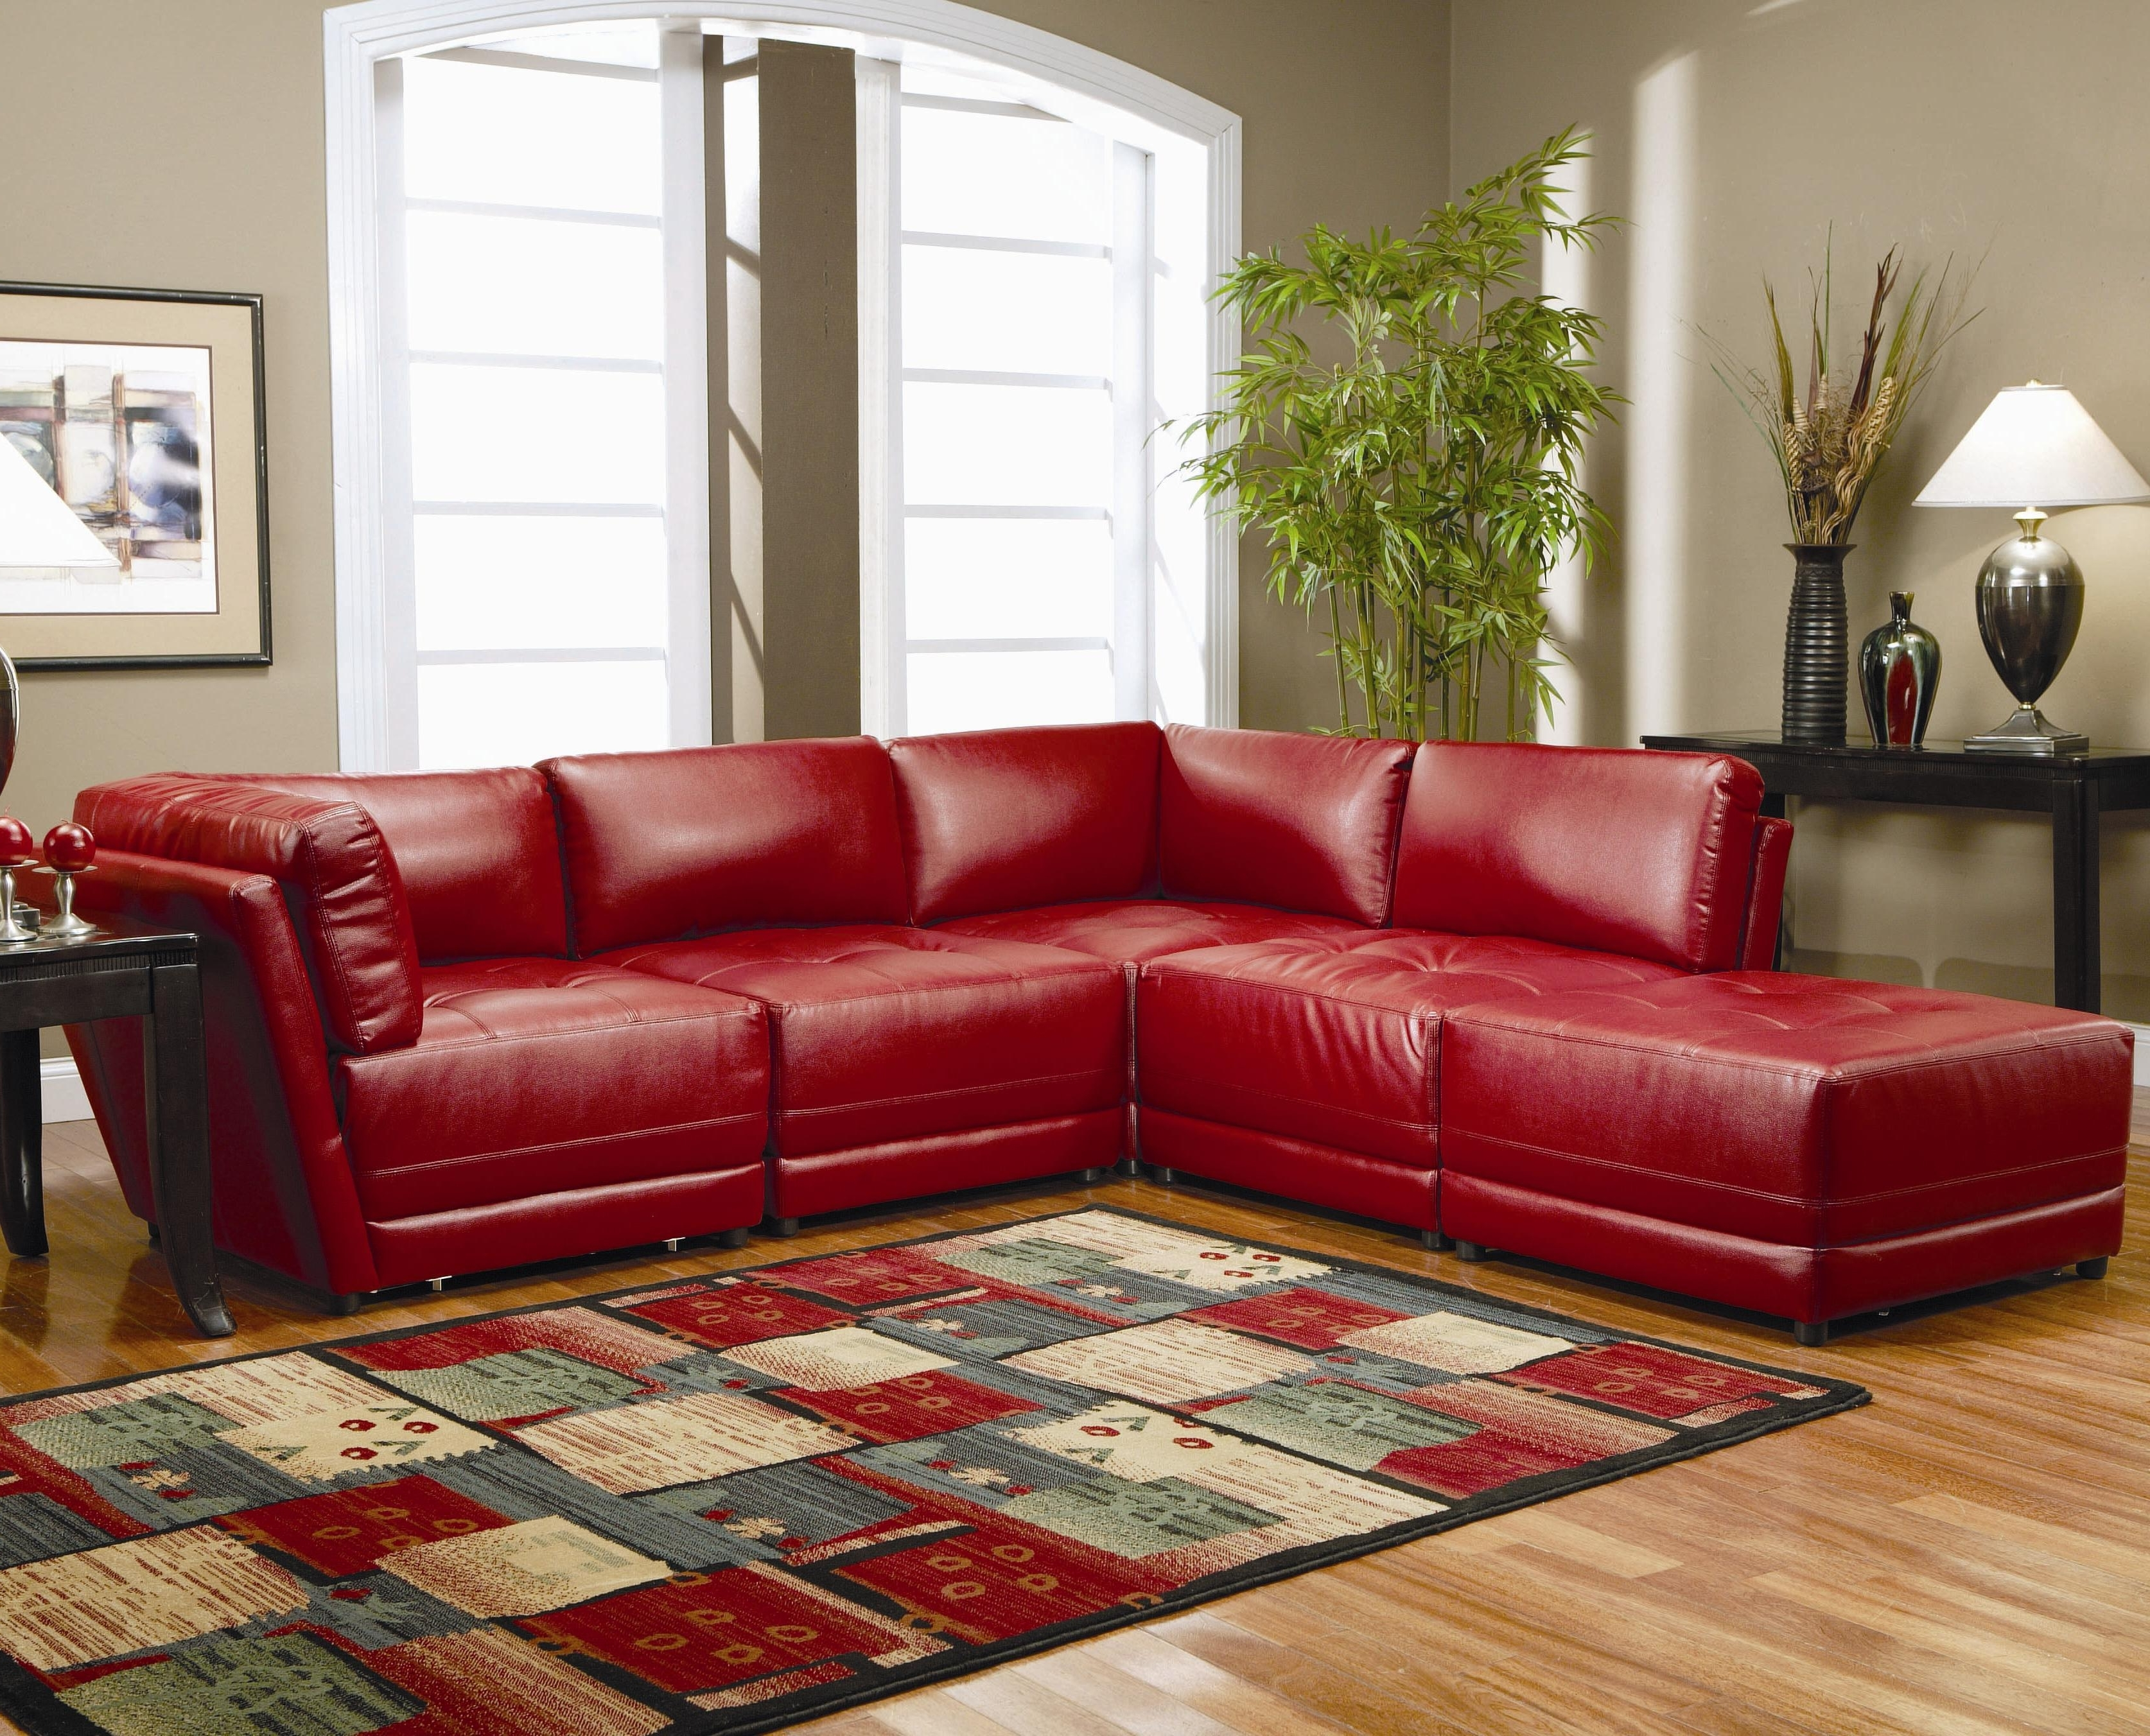 Green Bay Wi Sectional Sofas pertaining to Recent Warm Red Leather Sectional L Shaped Sofa Design Ideas For Living